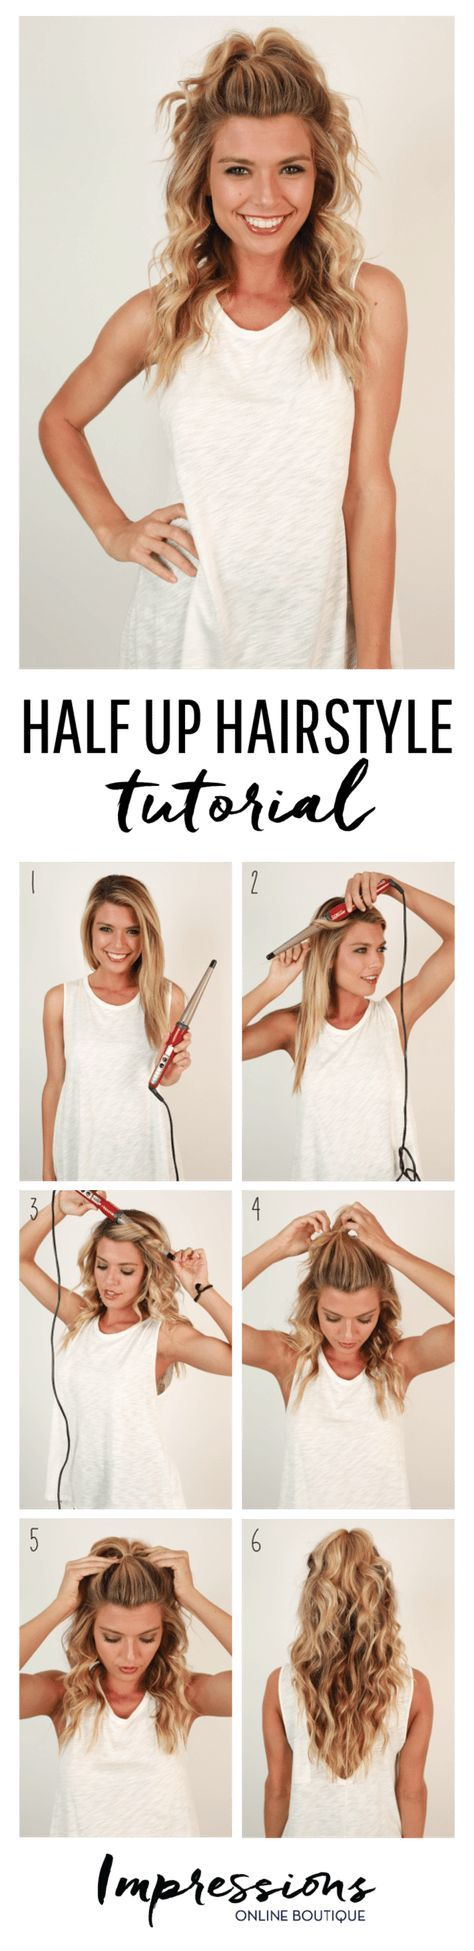 One, Two , Three… Only A Few Steps Are Separating You From Your Perfect Hairstyle